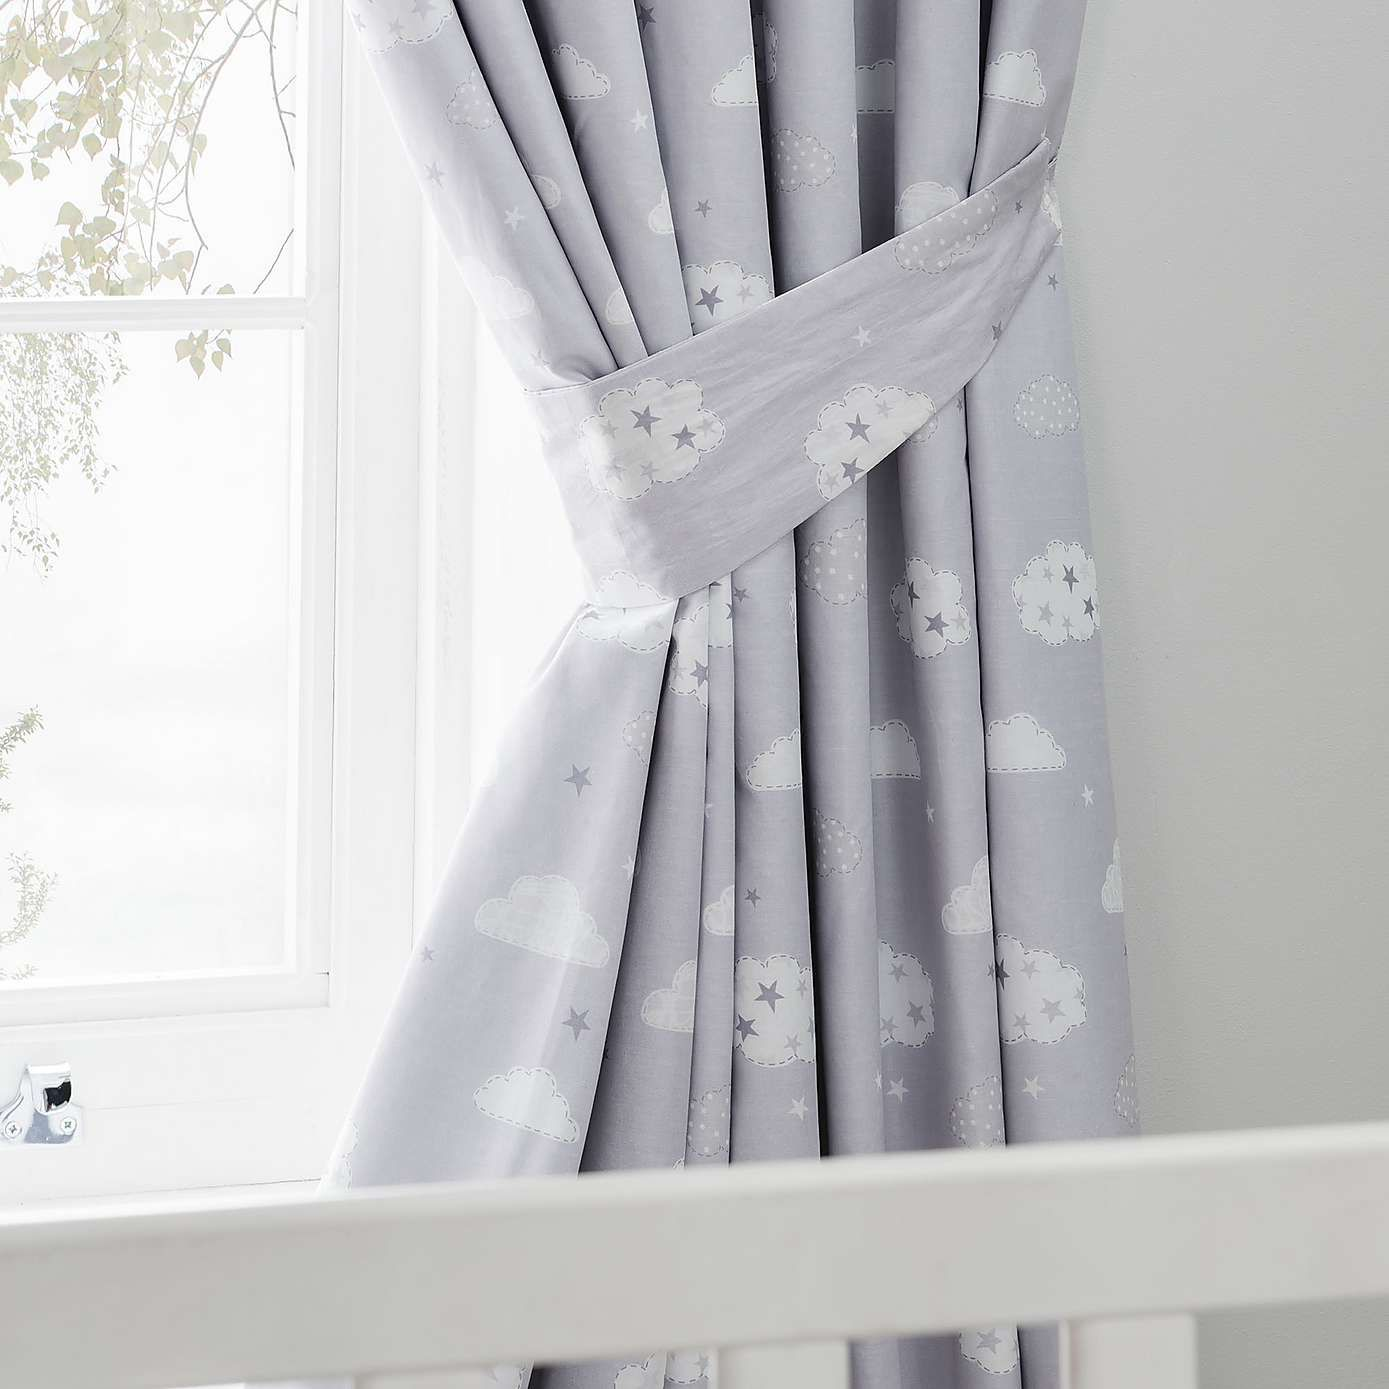 Sweet Dreams Blackout Pencil Pleat Curtains Dunelm Childrens Curtains Baby Curtains Baby Room Curtains